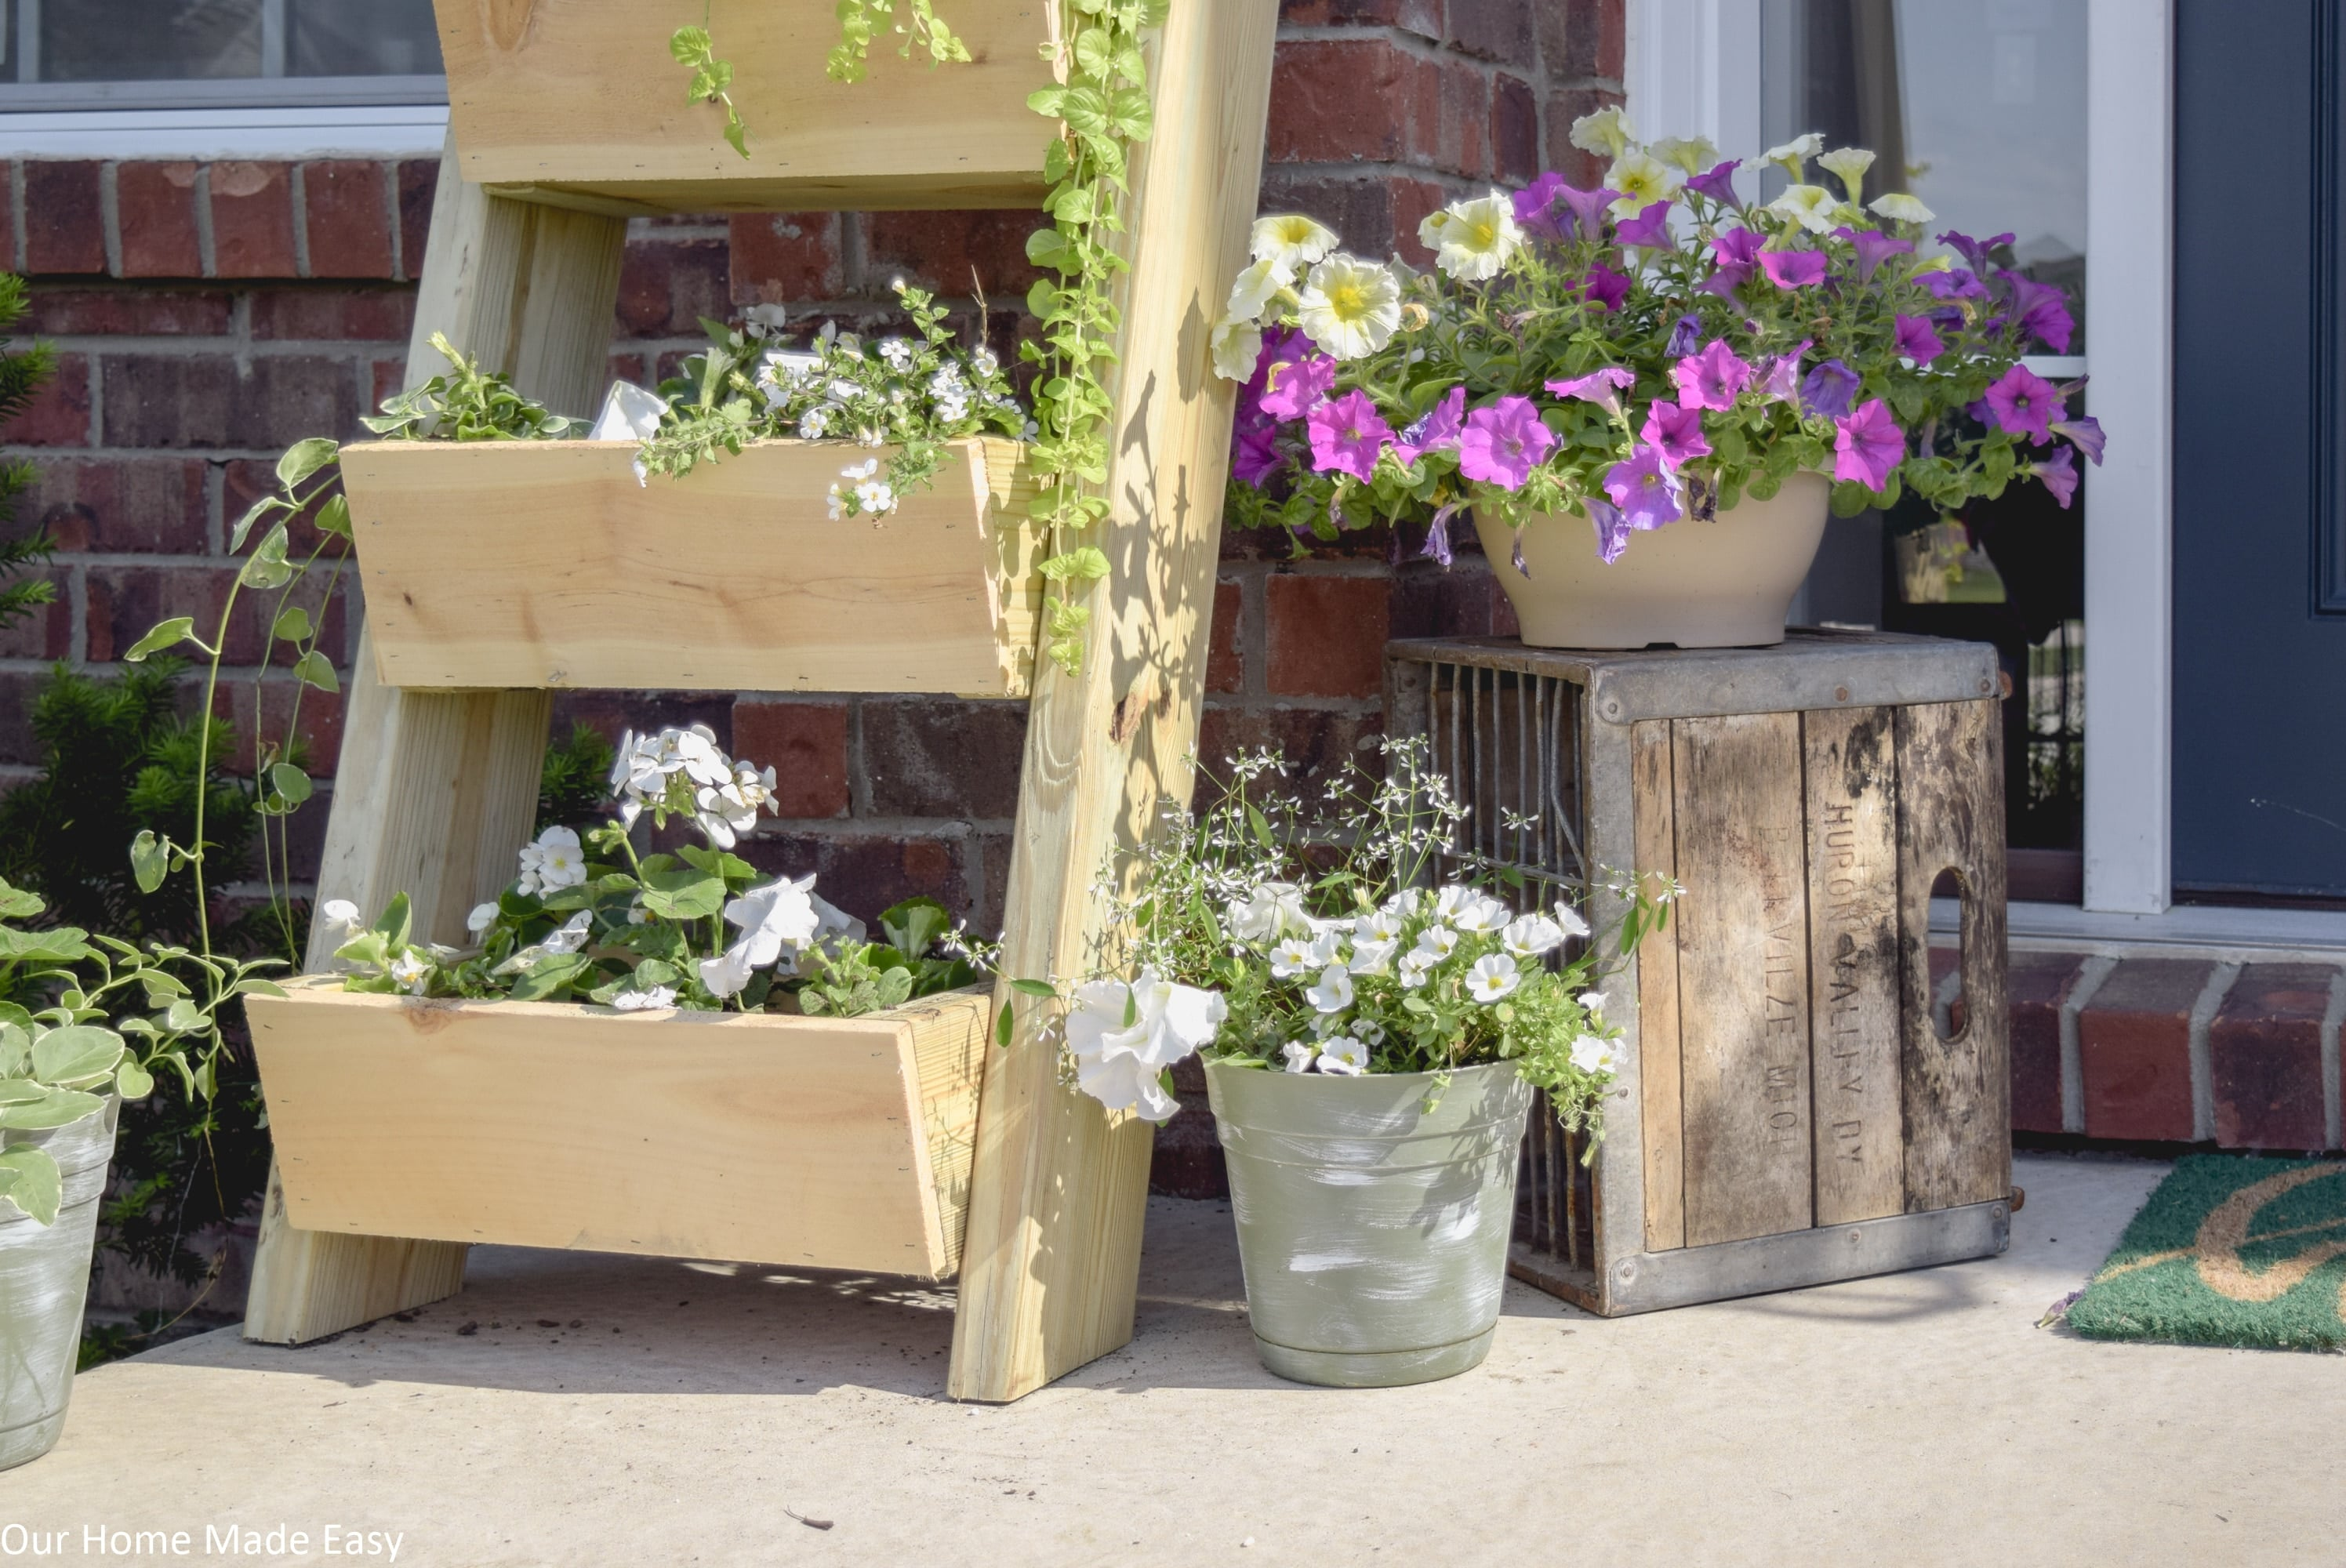 Sell your home fast by upping your curb appeal with front porch decor